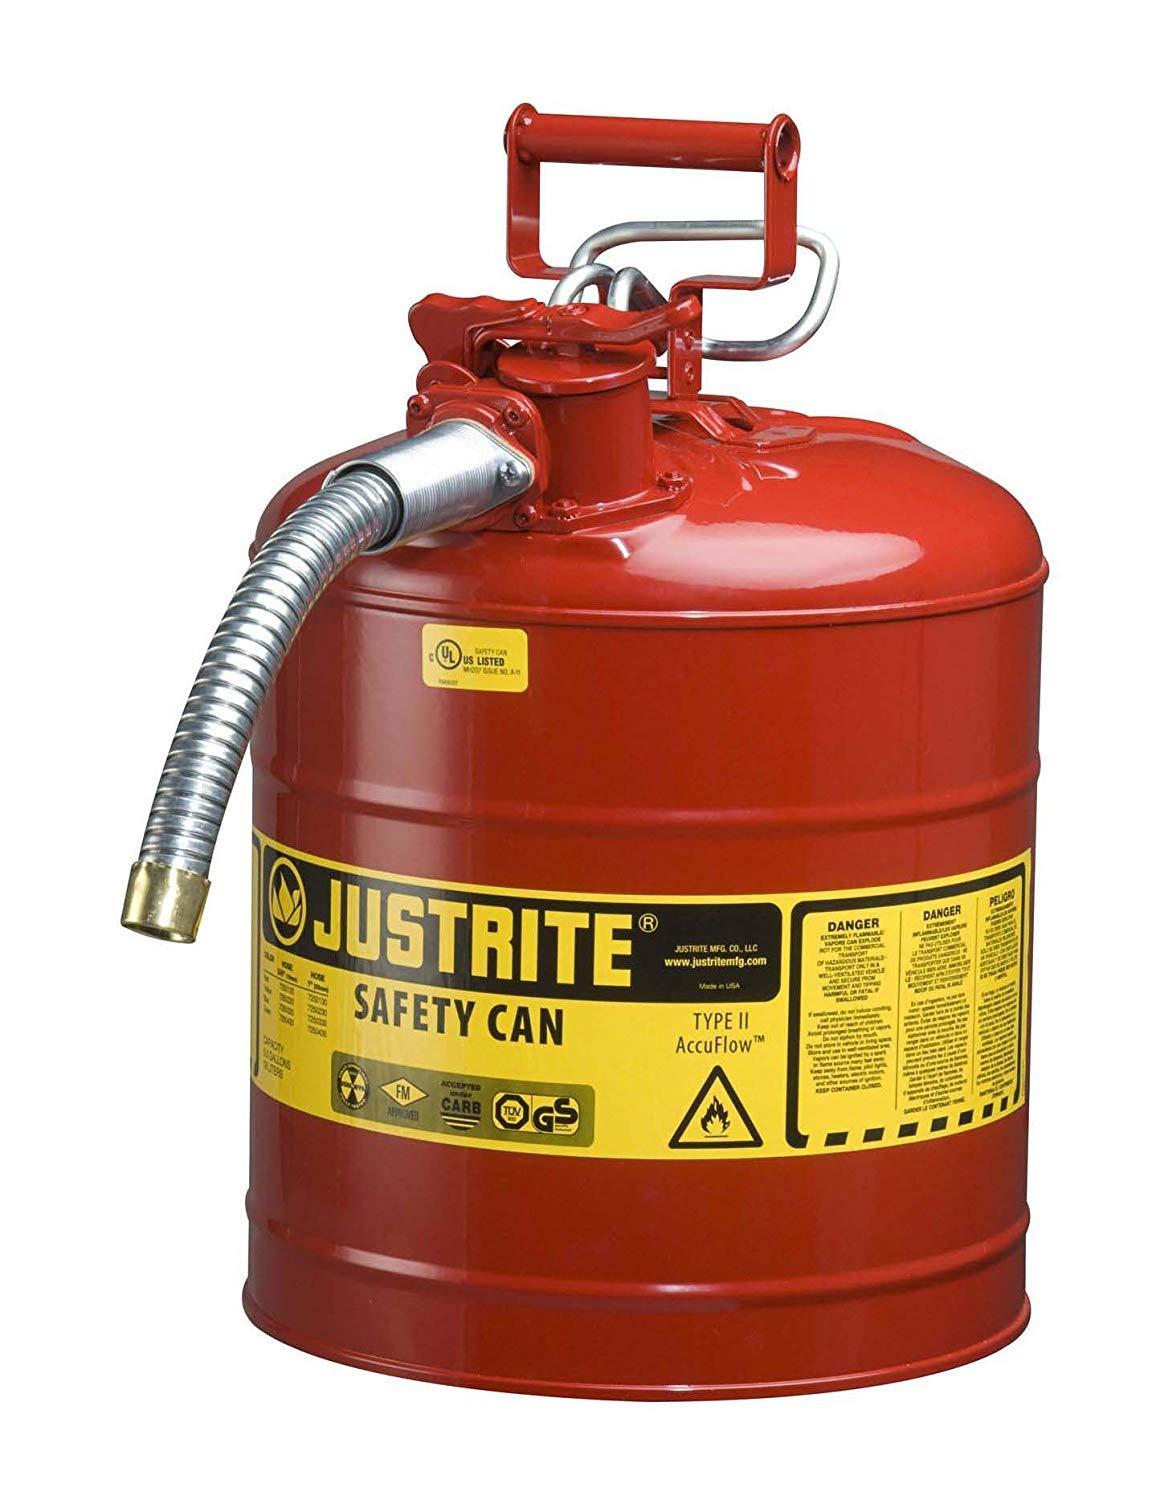 Justrite 7250130 Galvanized Steel, AccuFlow Type II Red Safety Can with 1'' Flexible Spout, Large ID Zone, Meets OSHA & NFPA for Handling Hazardous Liquids. 5 Gallon (19L) Size. (Pack of 3)